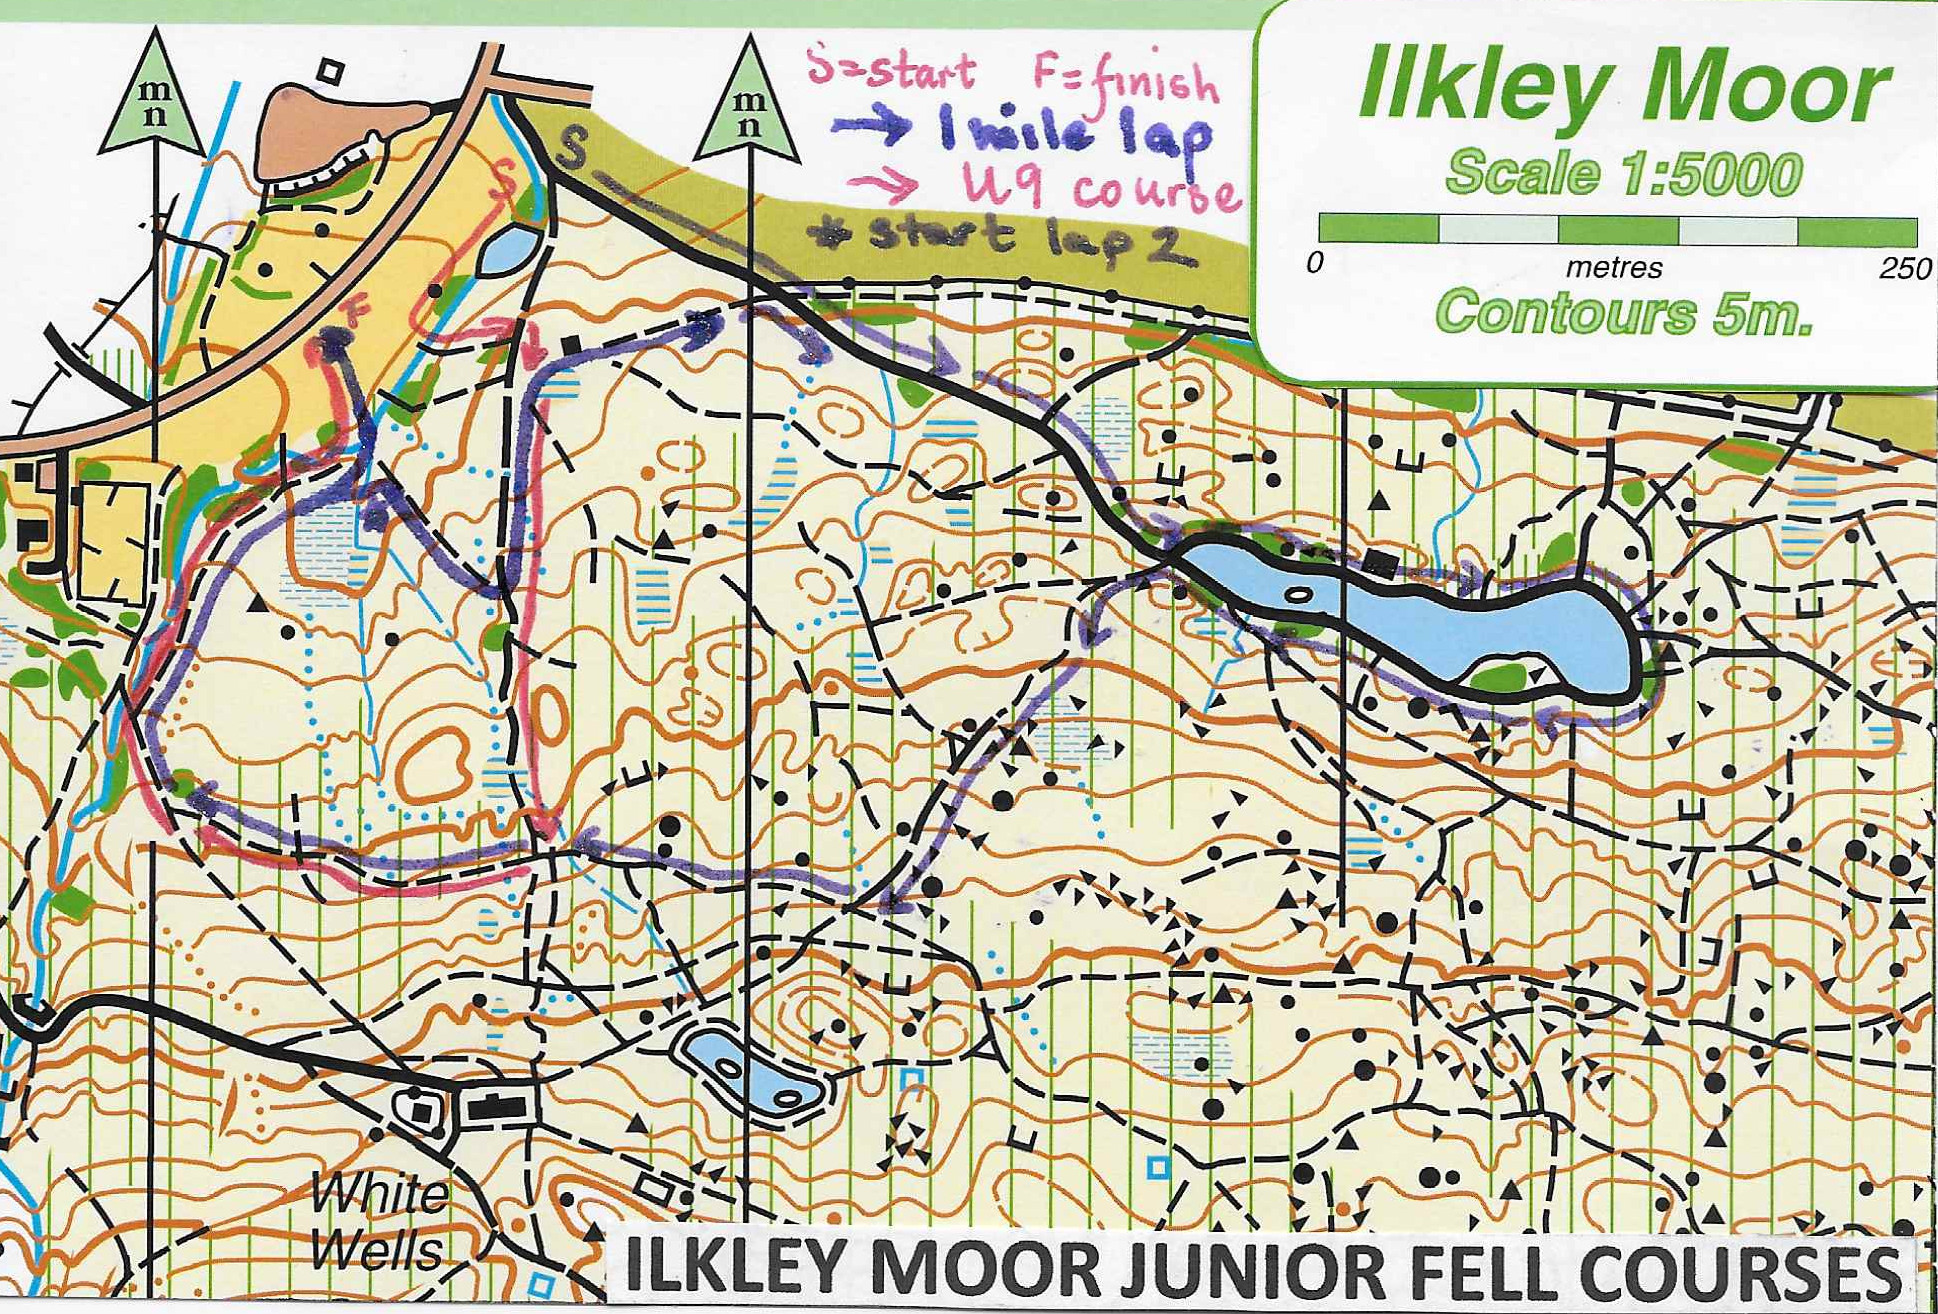 Ilkley Moor fell races junior courses